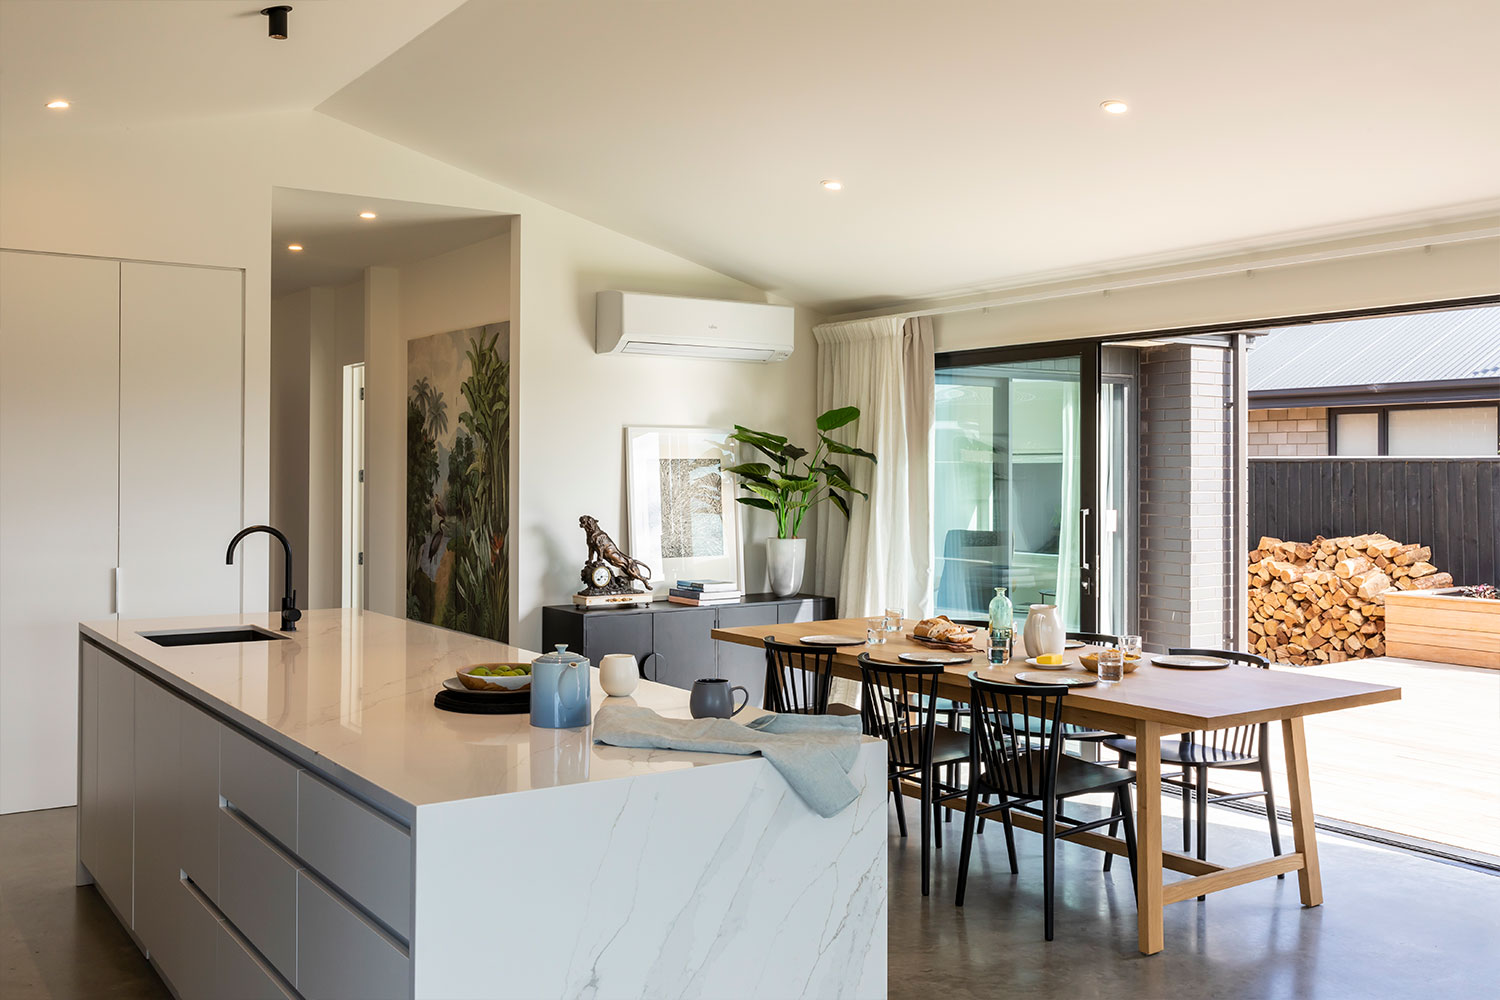 https://www.benchmarkhomes.co.nz/wp-content/uploads/2021/06/Projects-Evans-4-1500-x-1000-High-Res.jpg